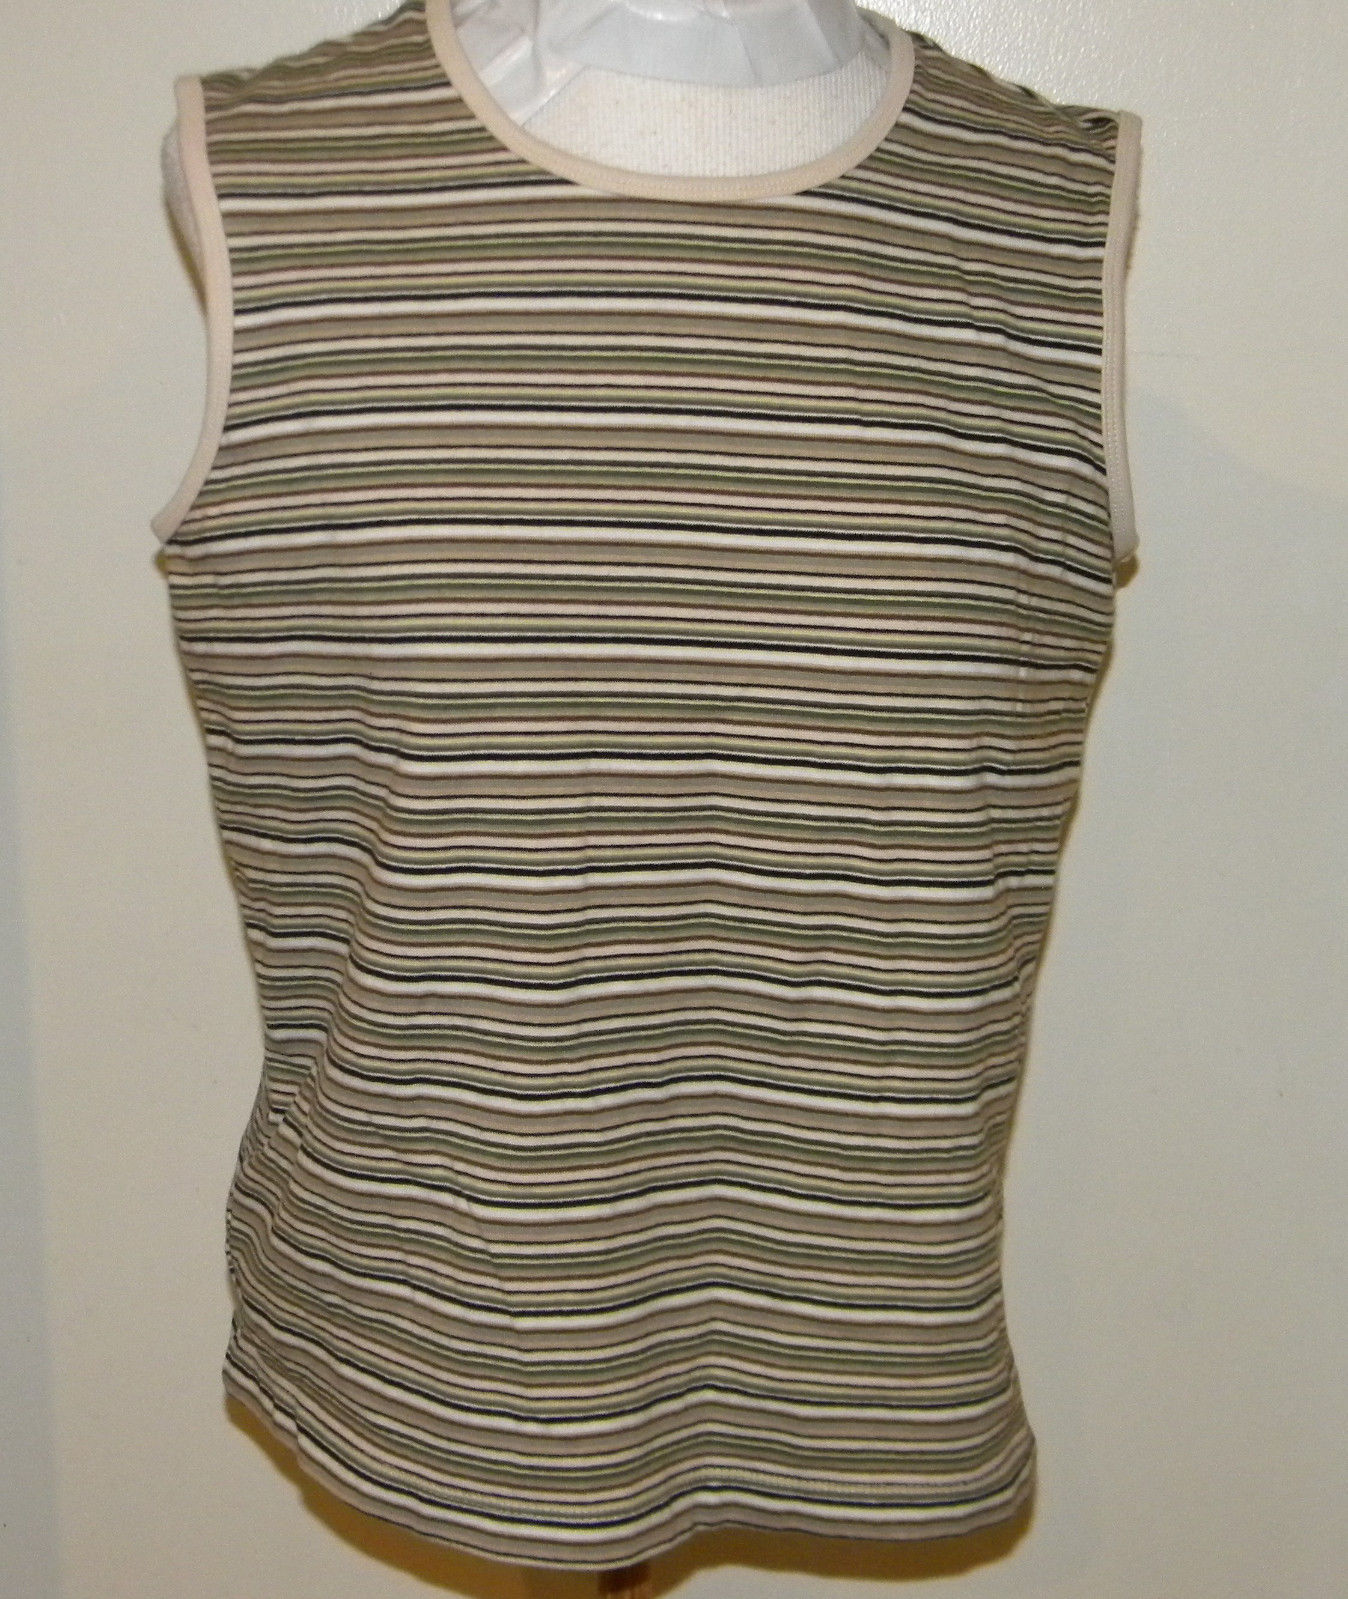 d2756fa36f33b9 57. 57. Previous. White Stag Brown white cowl neck stretch Striped Tank Top  sz L great cond. NICE